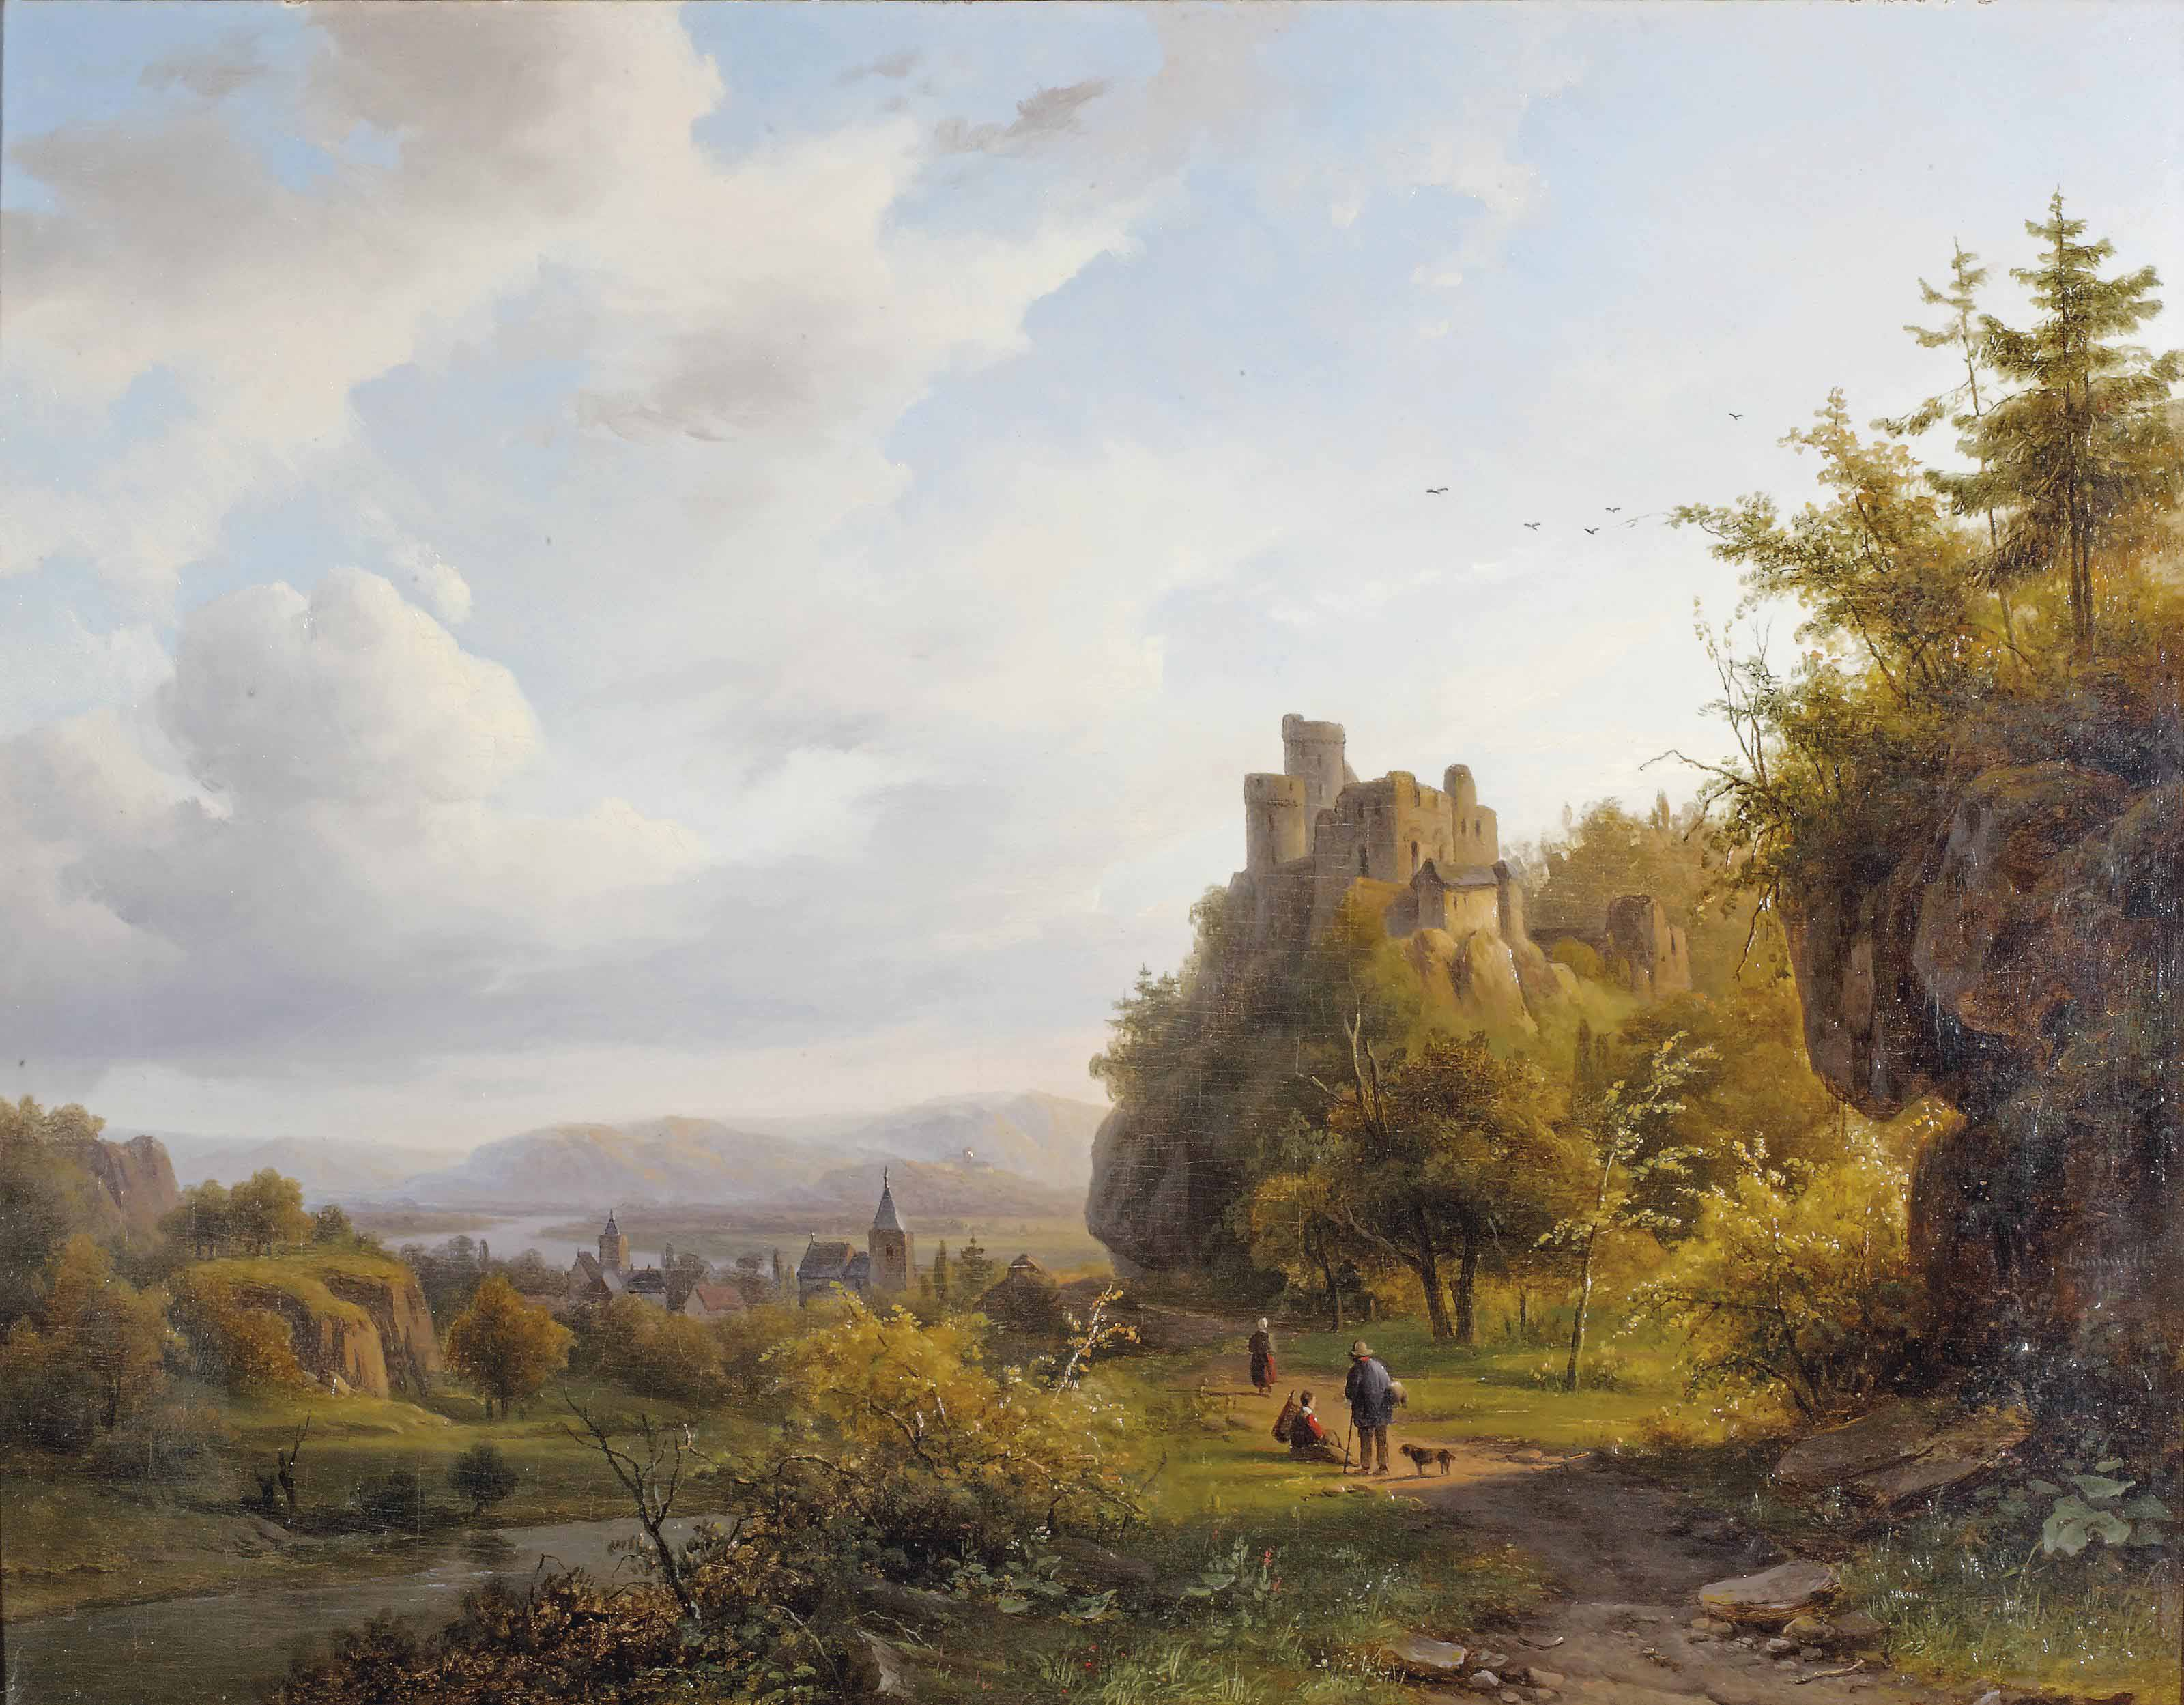 A Rheinish landscape with a ruin